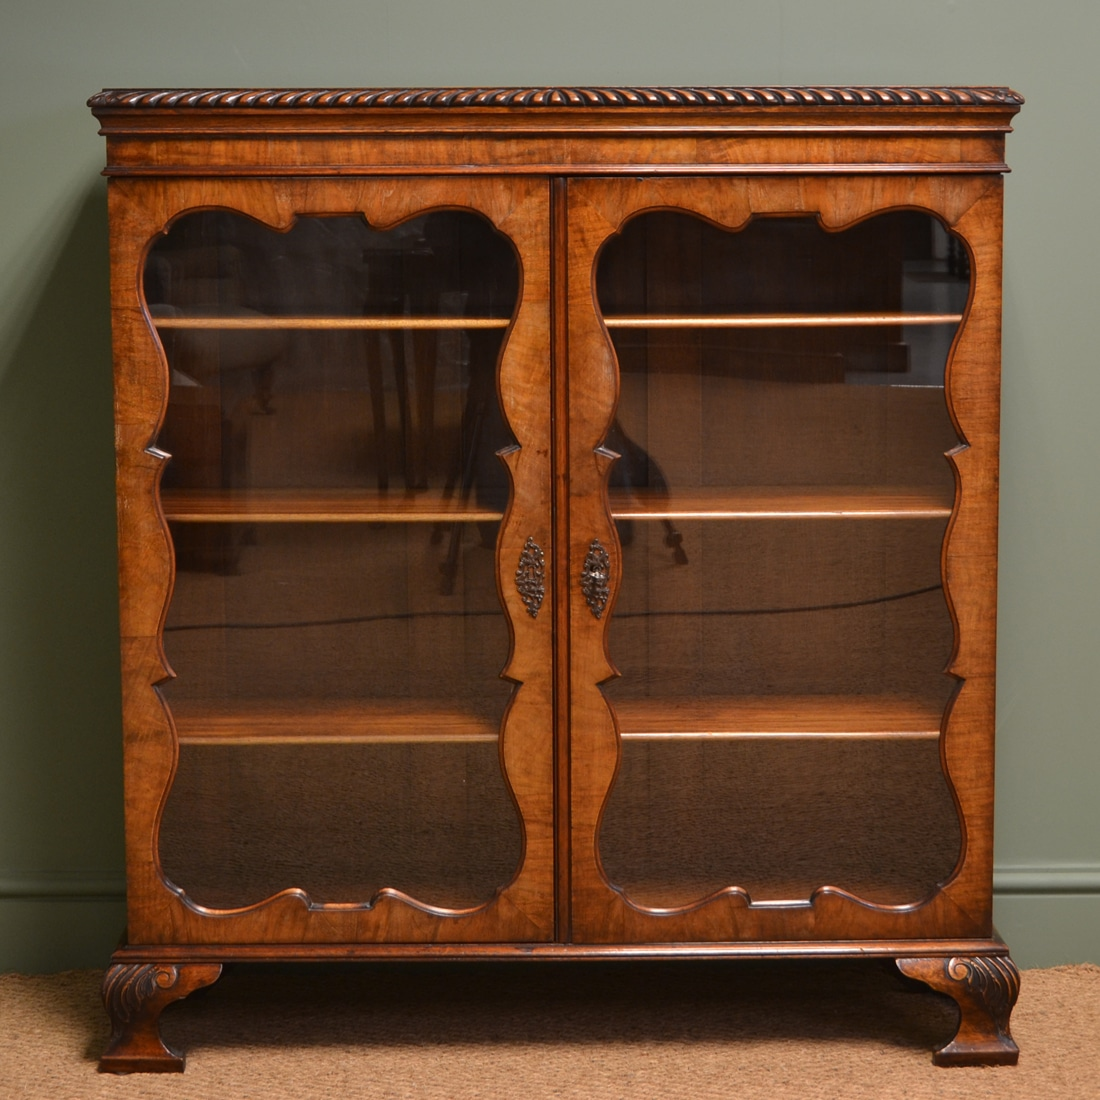 Edwardian Figured Walnut Antique Display Cabinet with gadrooning